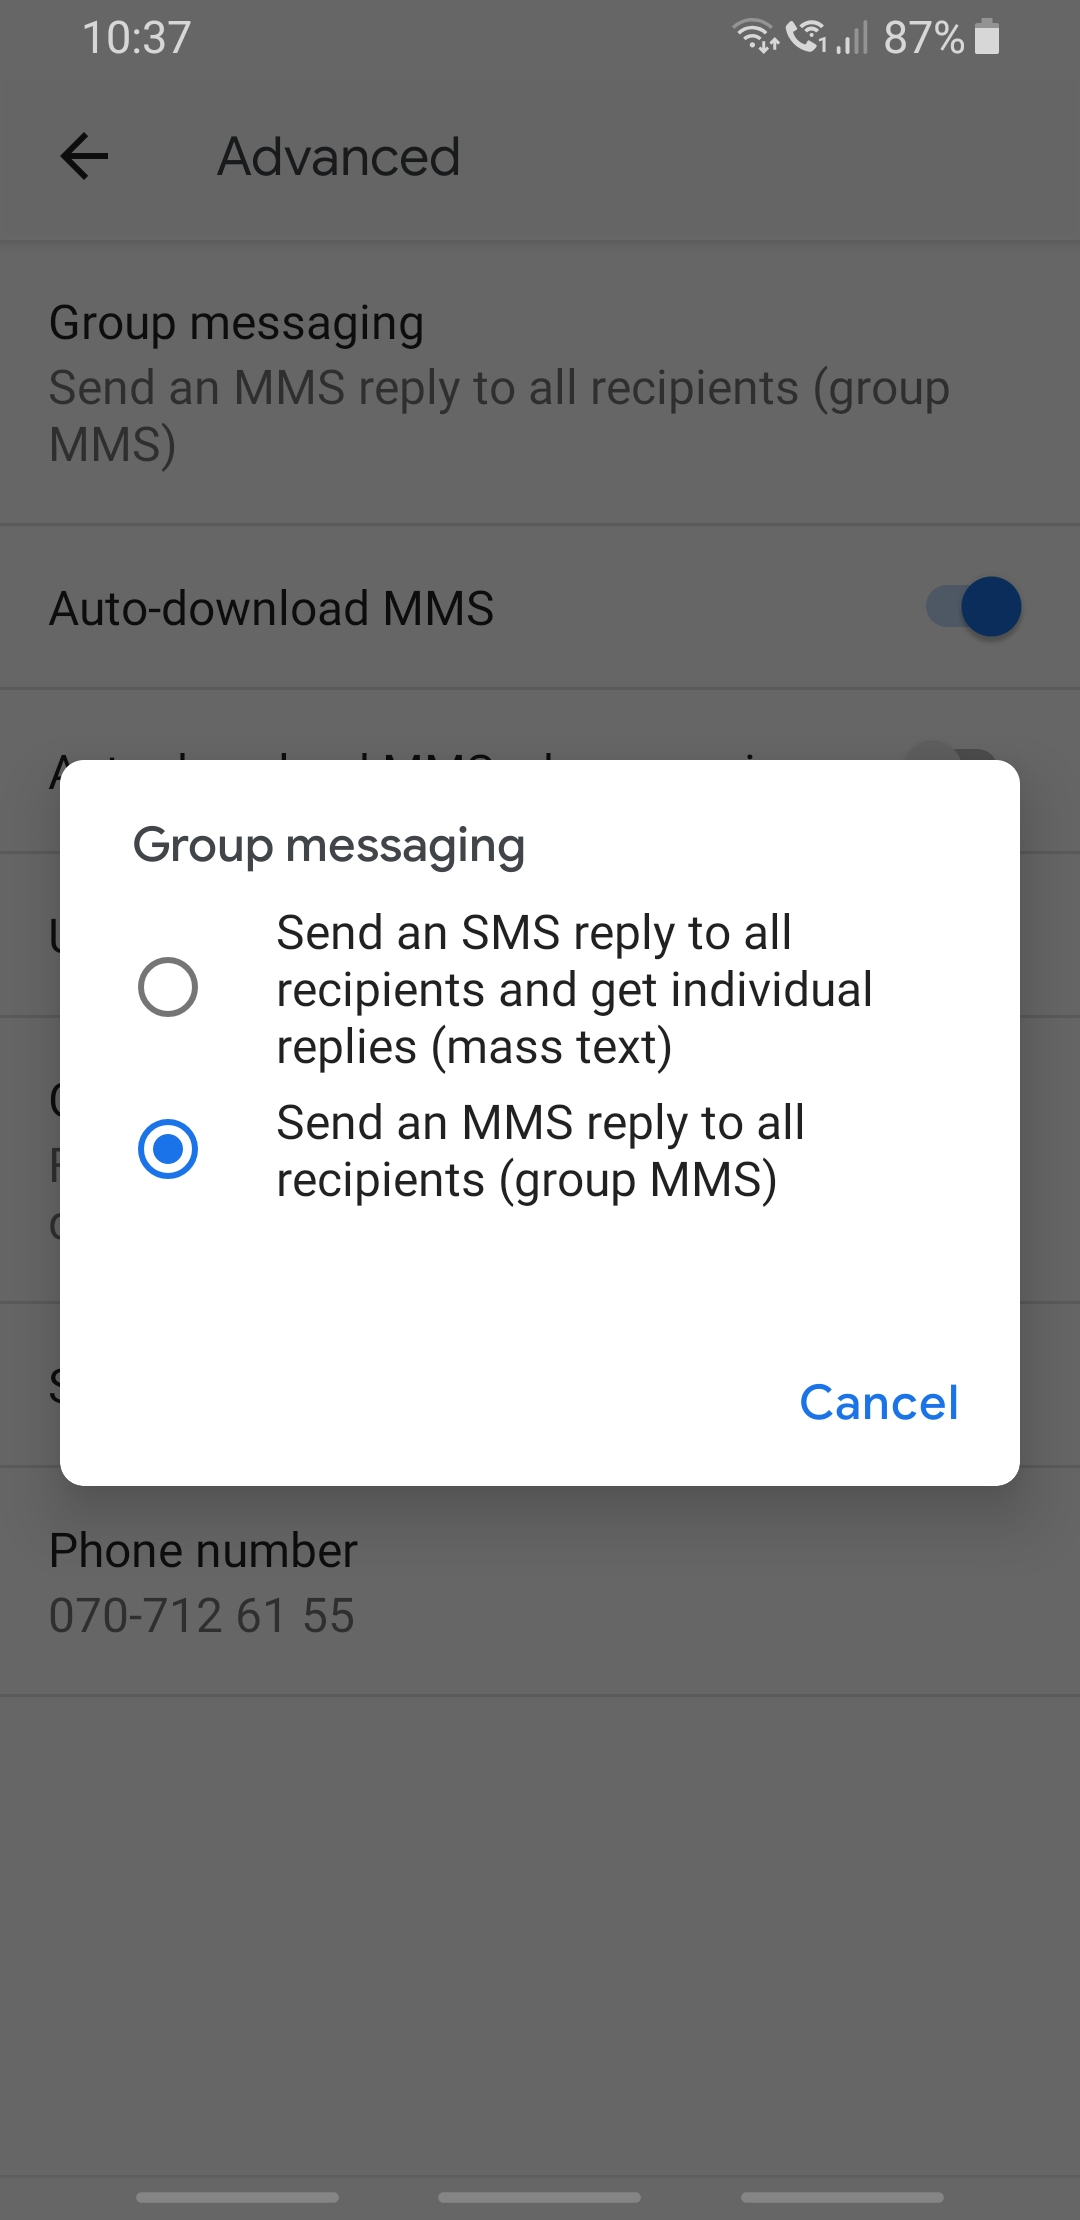 Replies to group messages are coming as individual texts